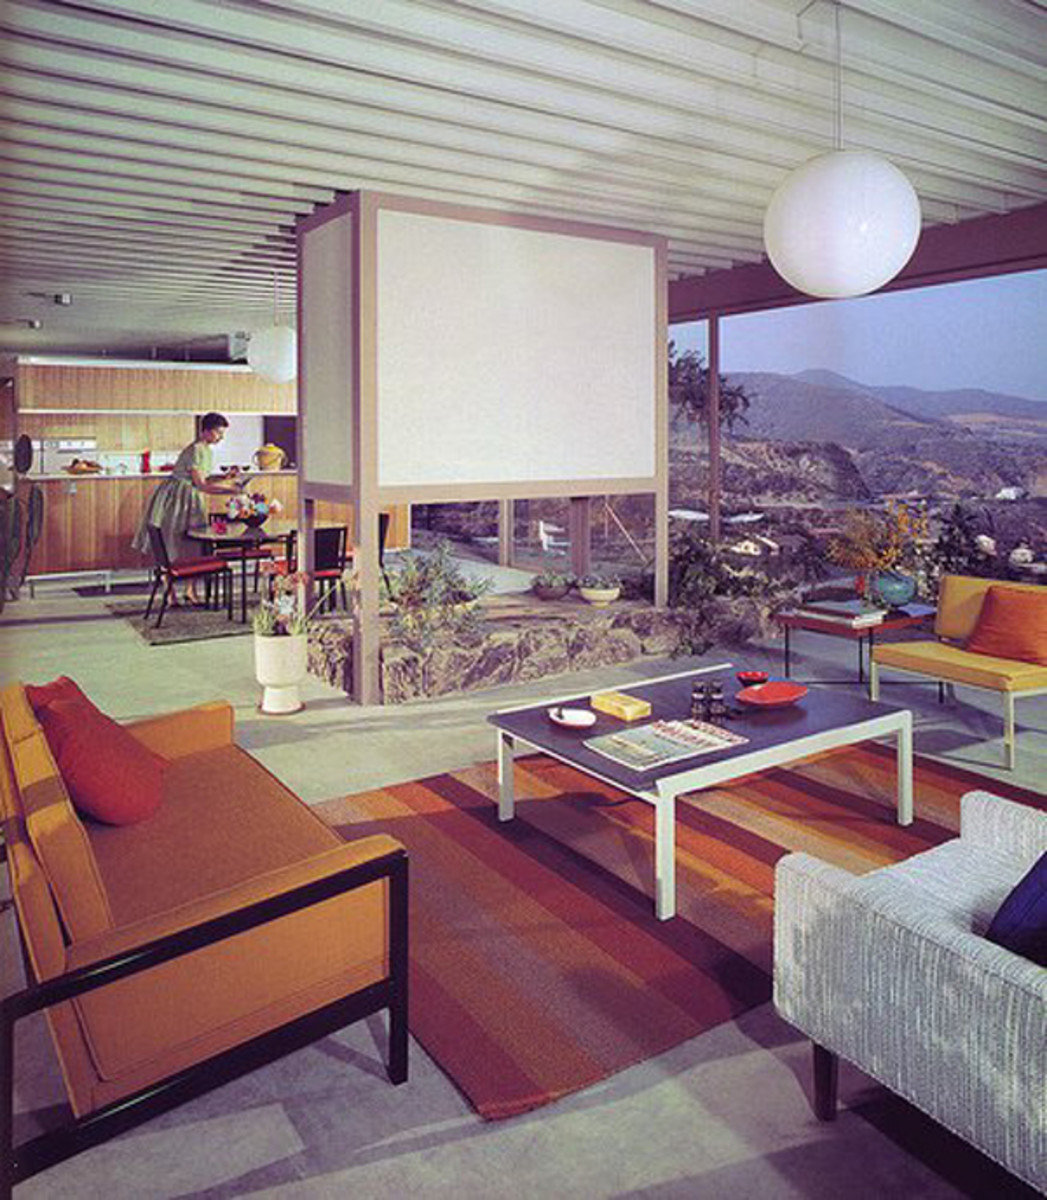 A Pocket Guide to Mid-Century Modern Architecture and Design